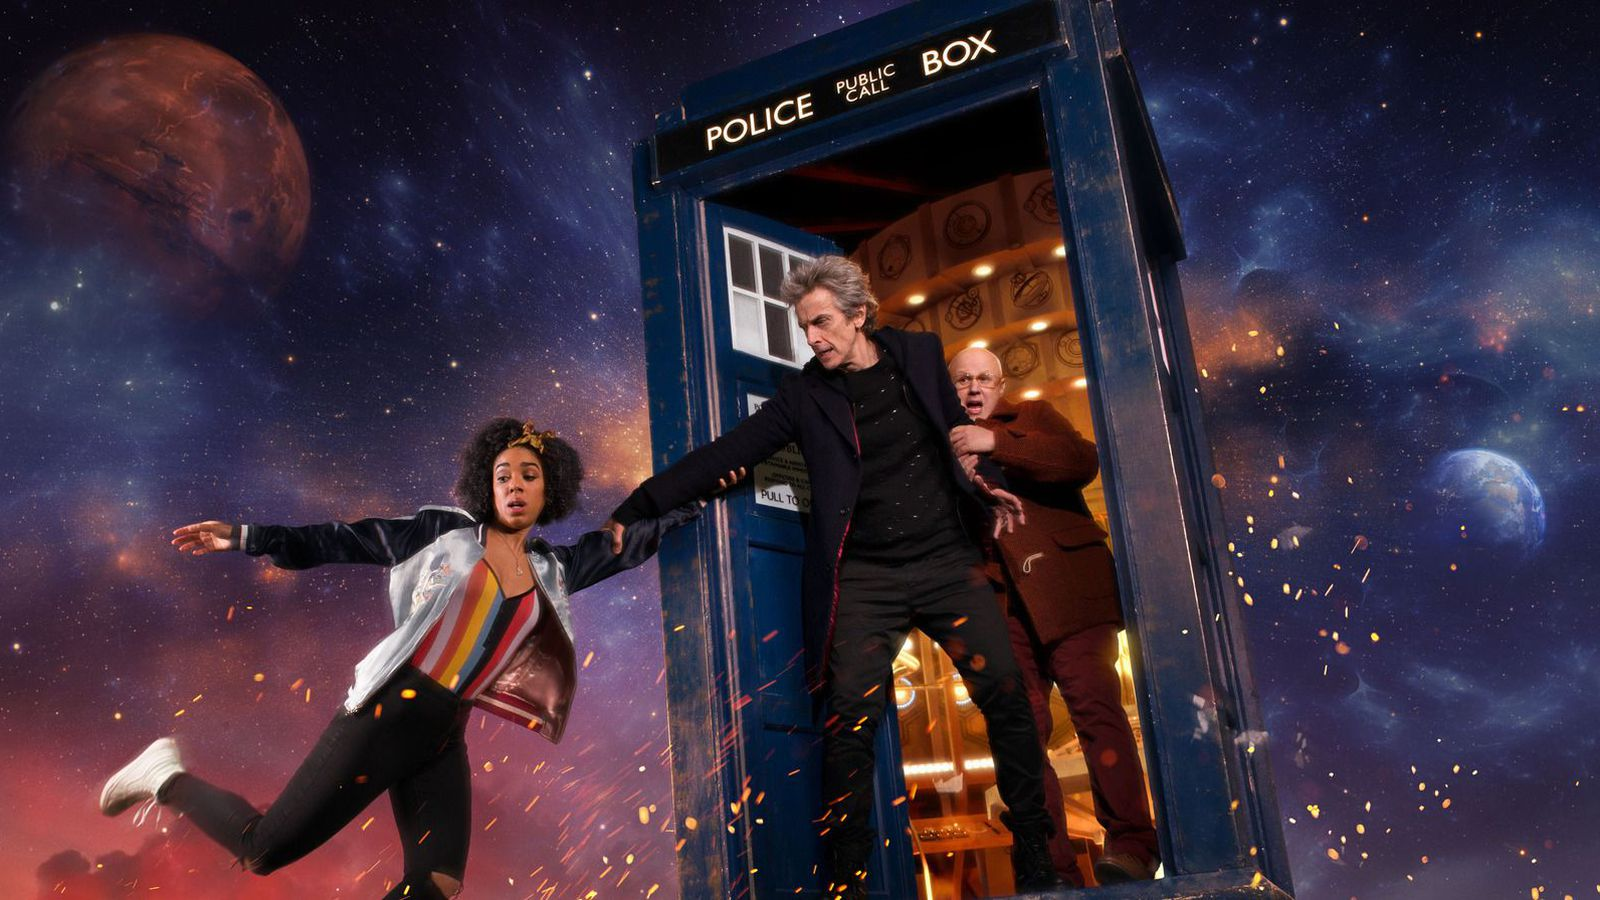 Doctor Who Series 10 promo